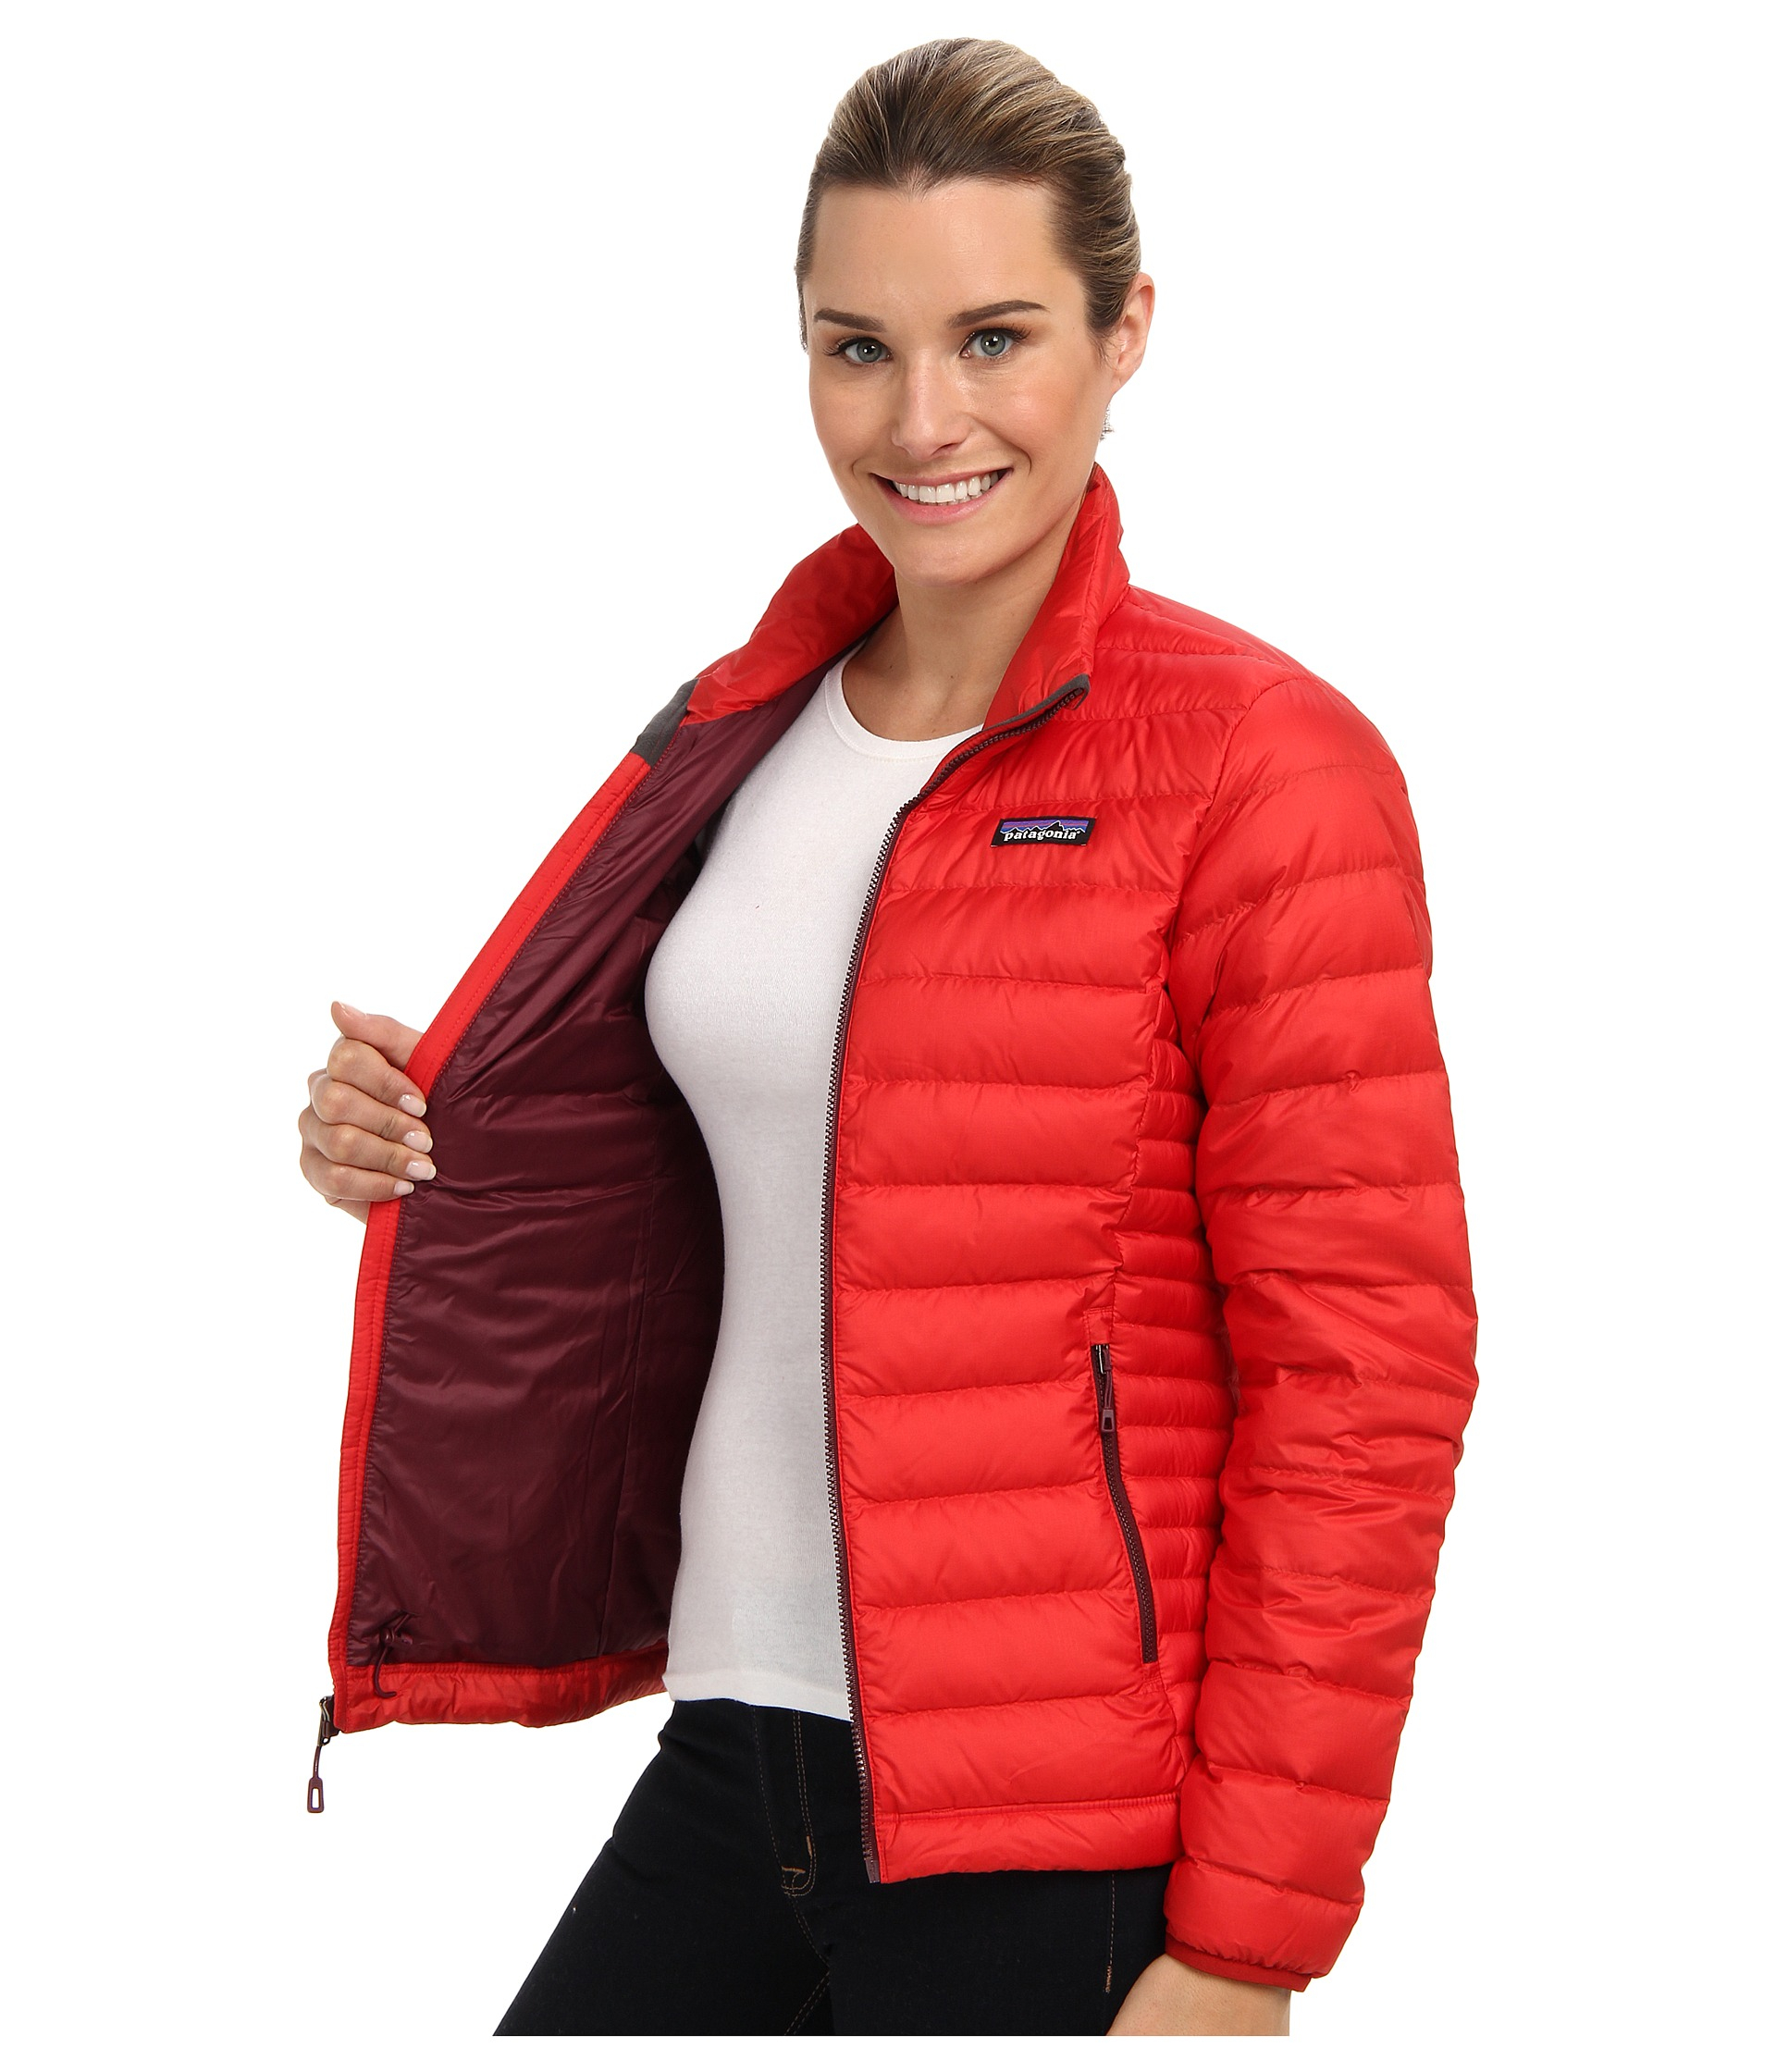 da1fa5b4d Women's Red Down Sweater Jacket